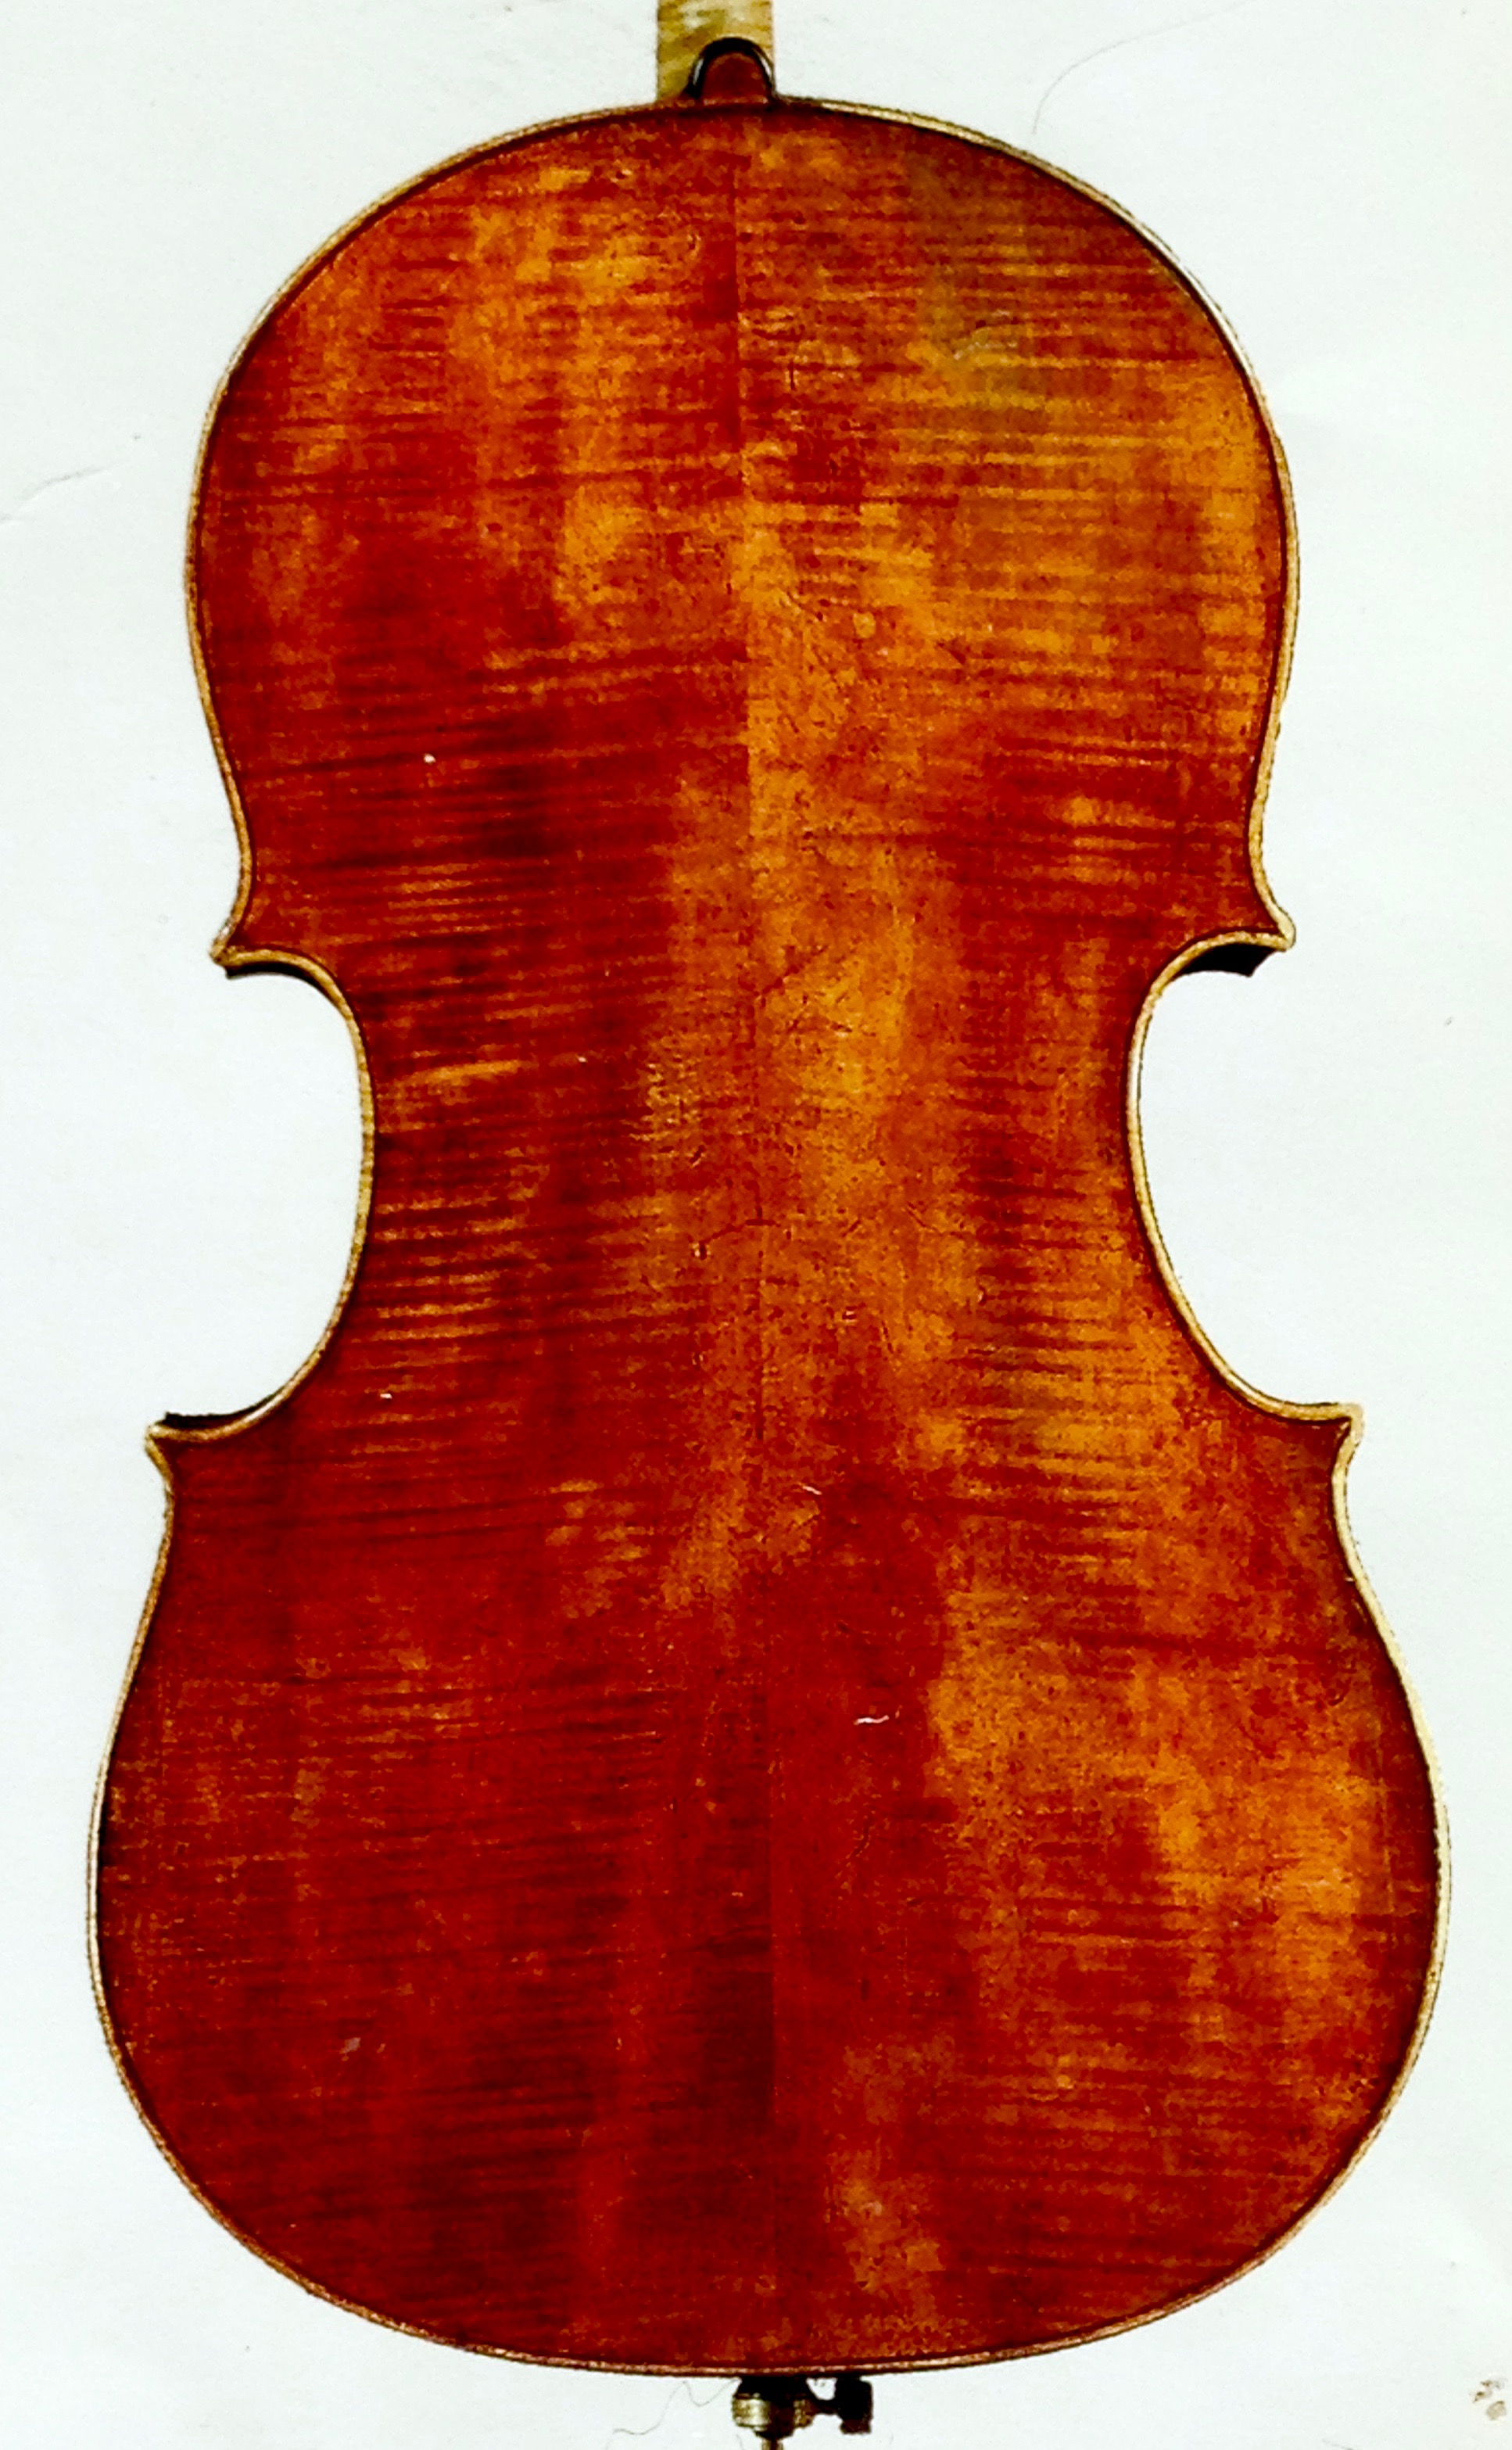 A Montagnana cello, showing the varnish wear on the back. The varnish begins to wear the moment the cello is first played.